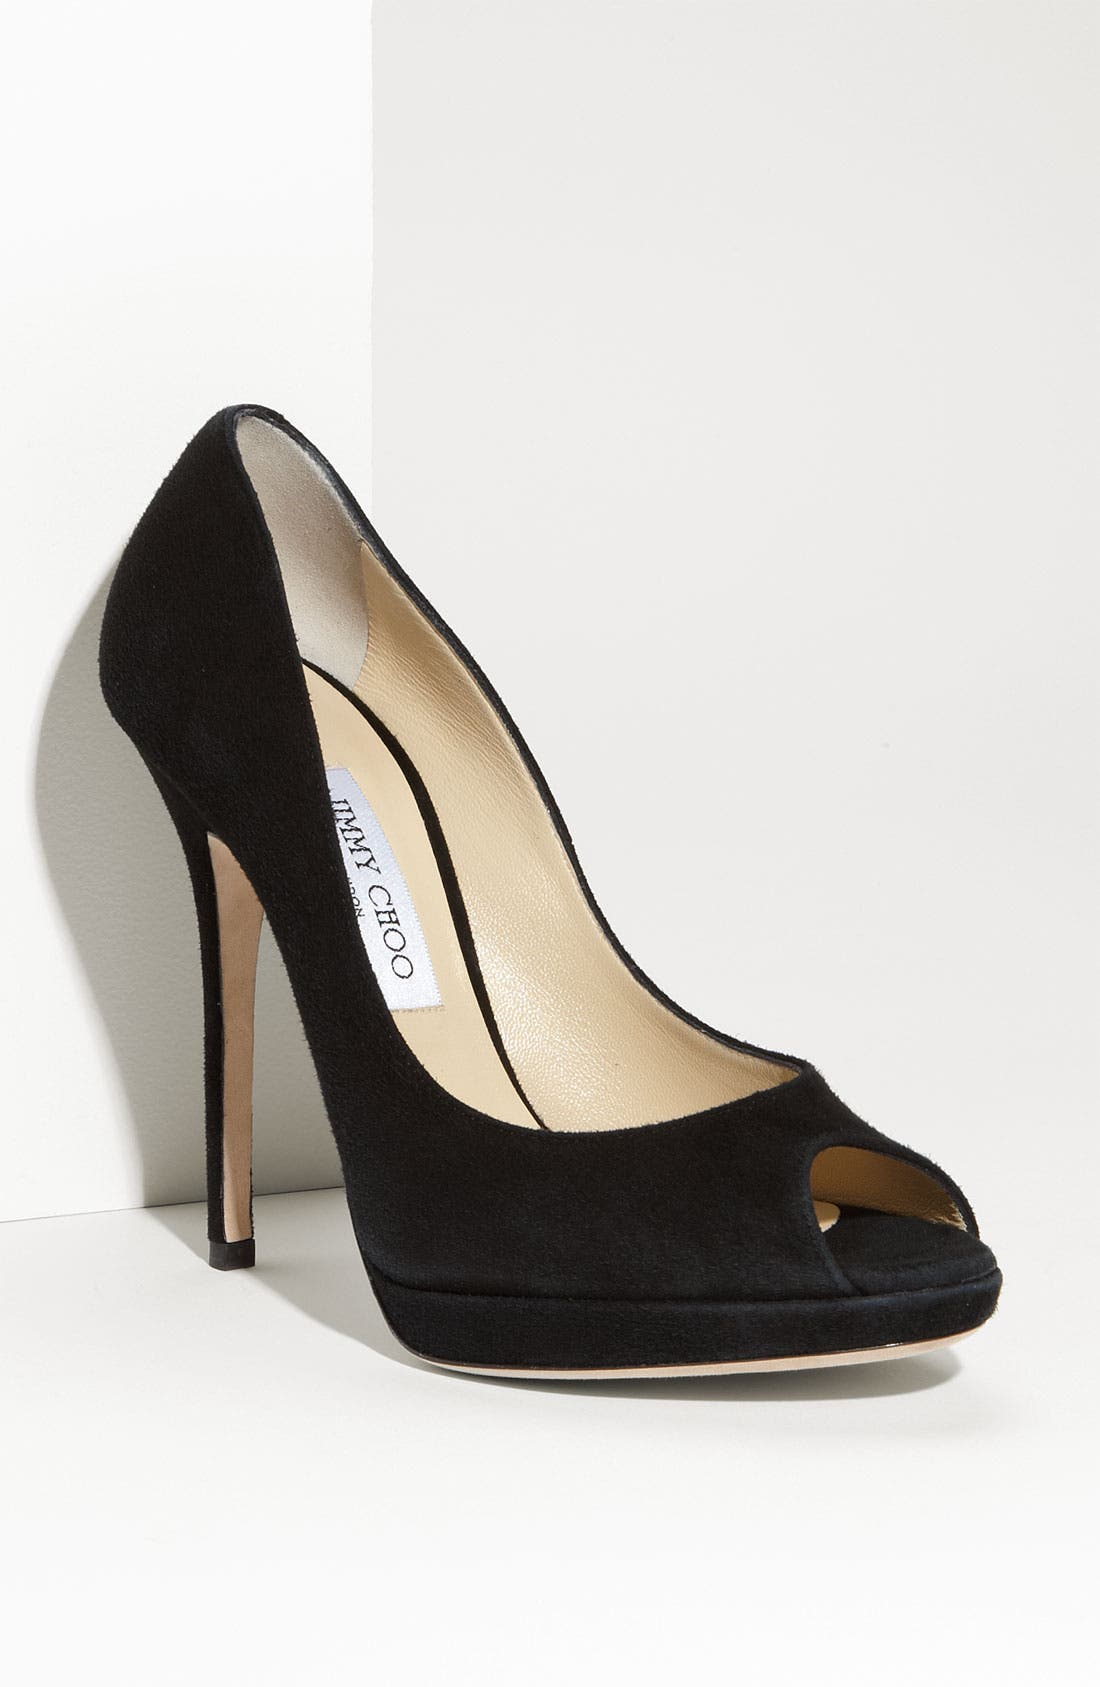 Alternate Image 1 Selected - Jimmy Choo 'Quiet' Platform Pump